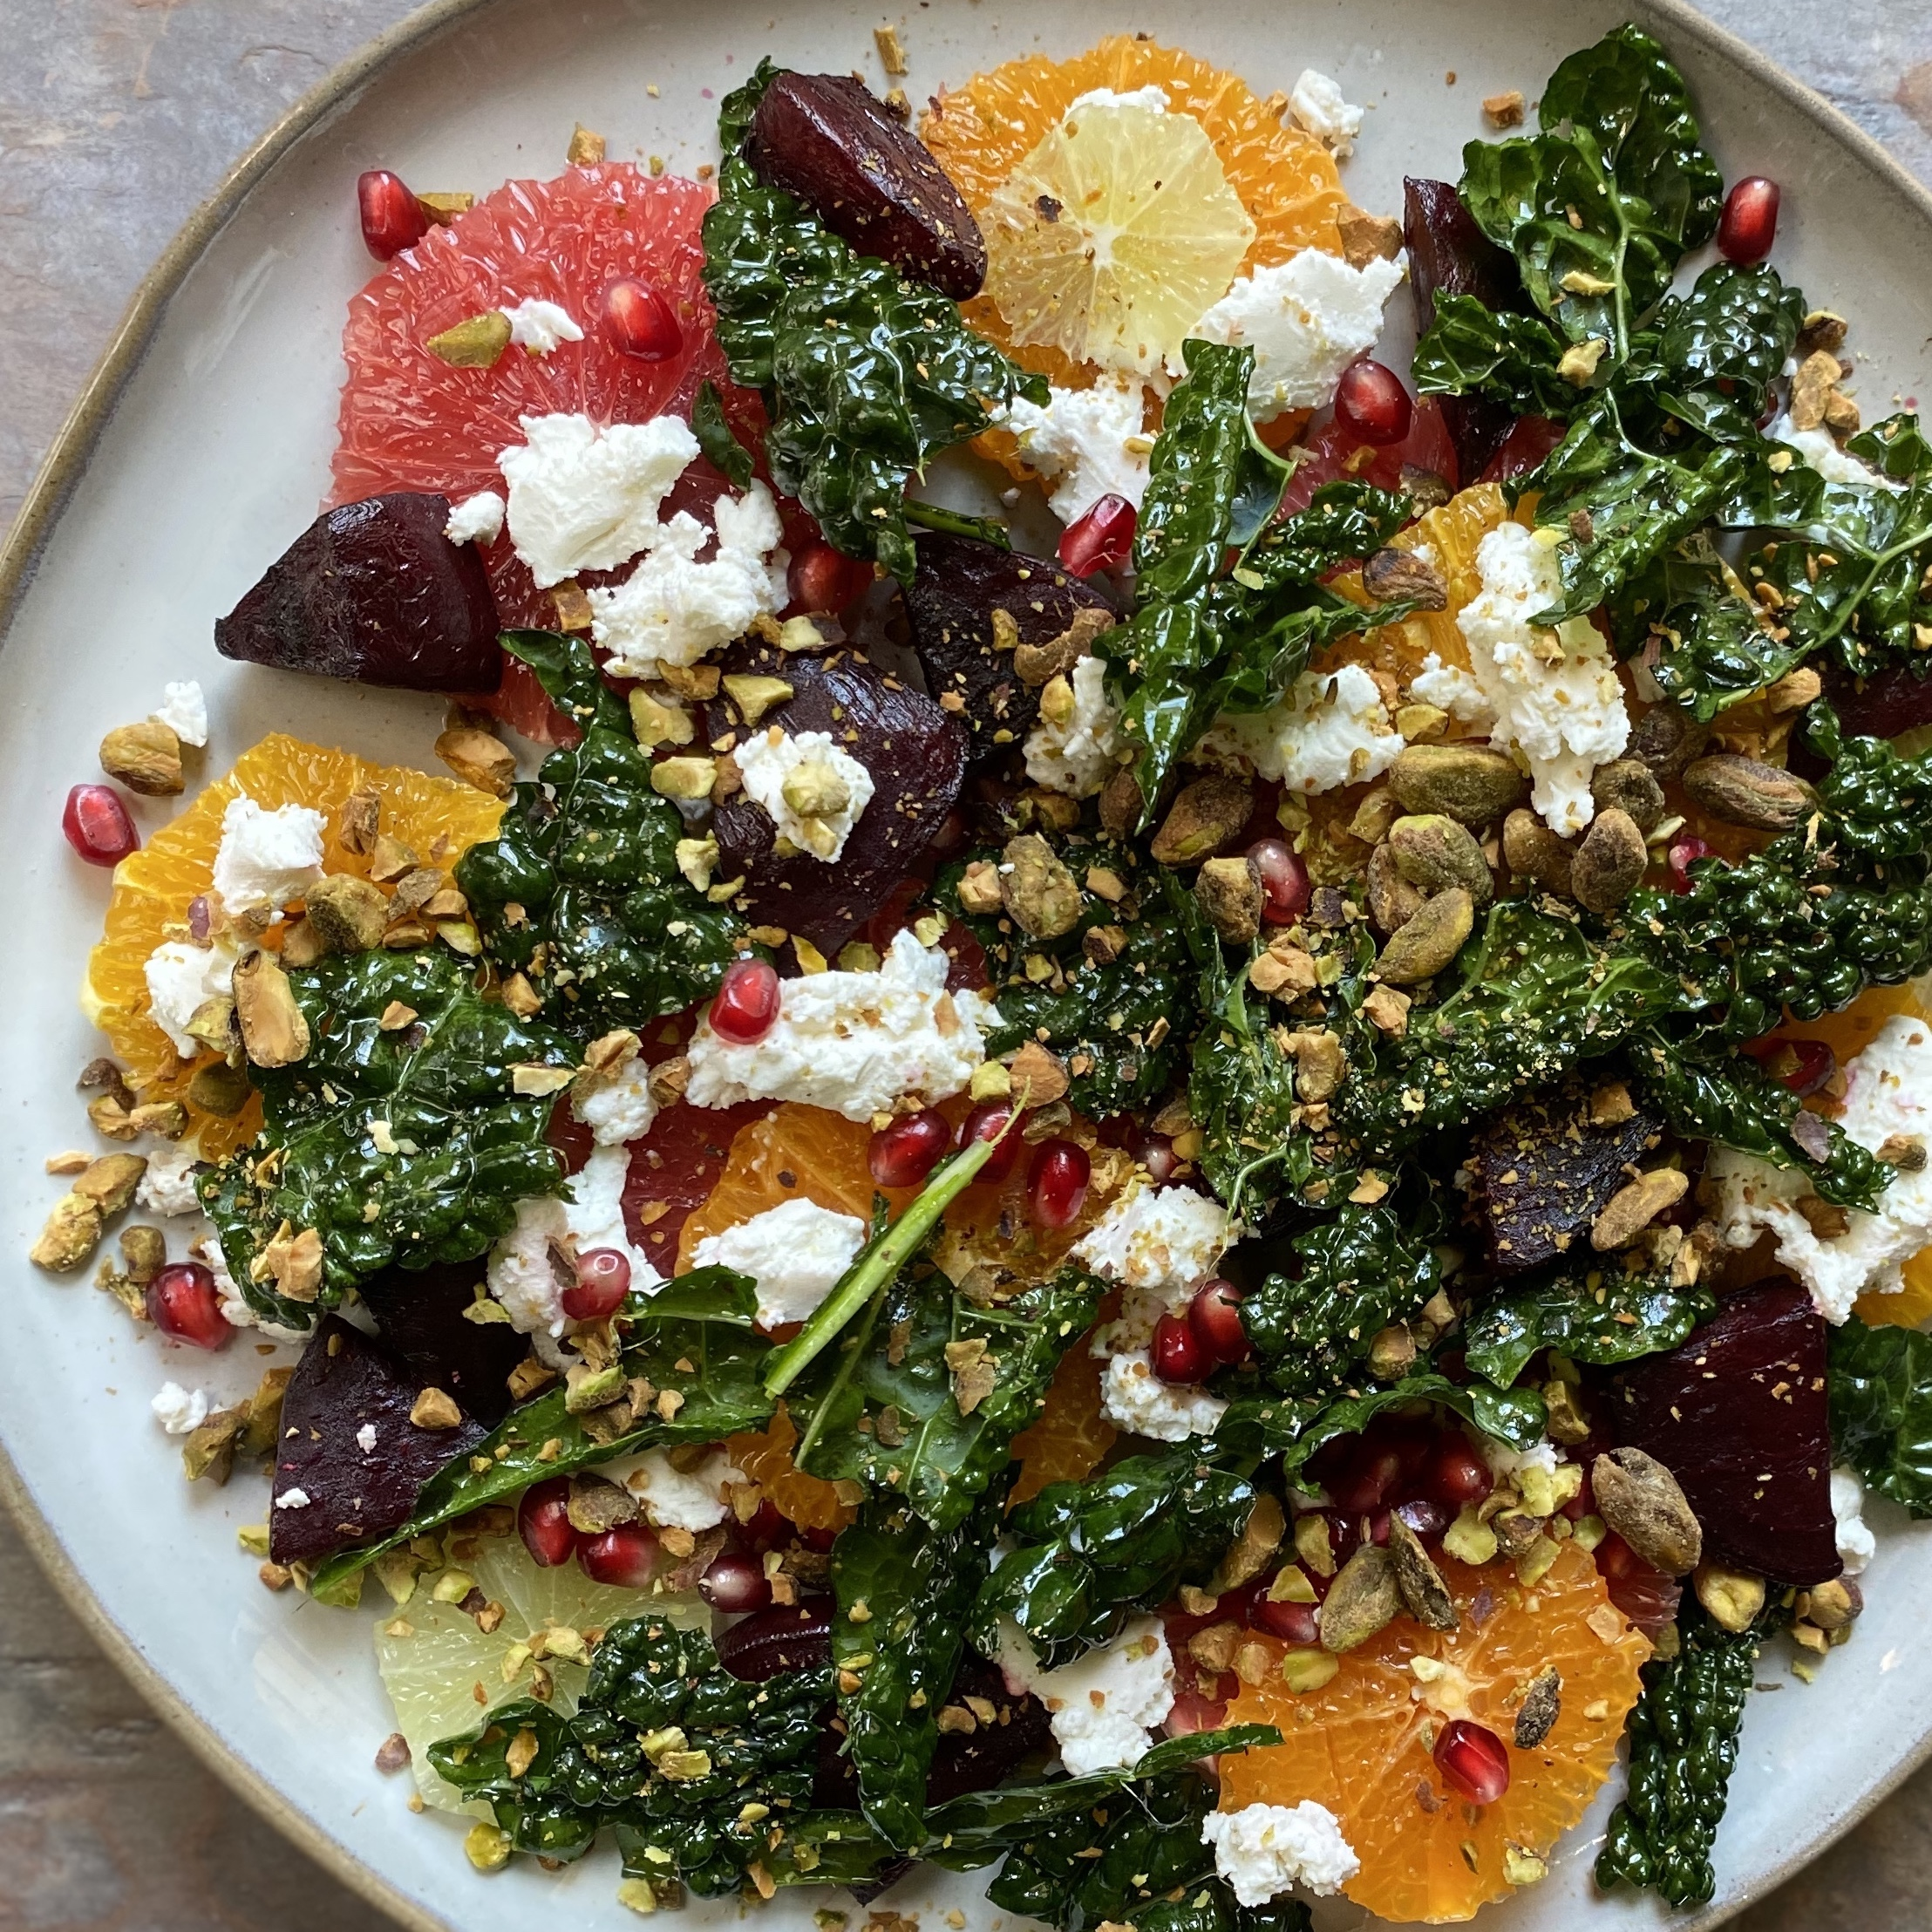 Citrus and beet salad with chevre